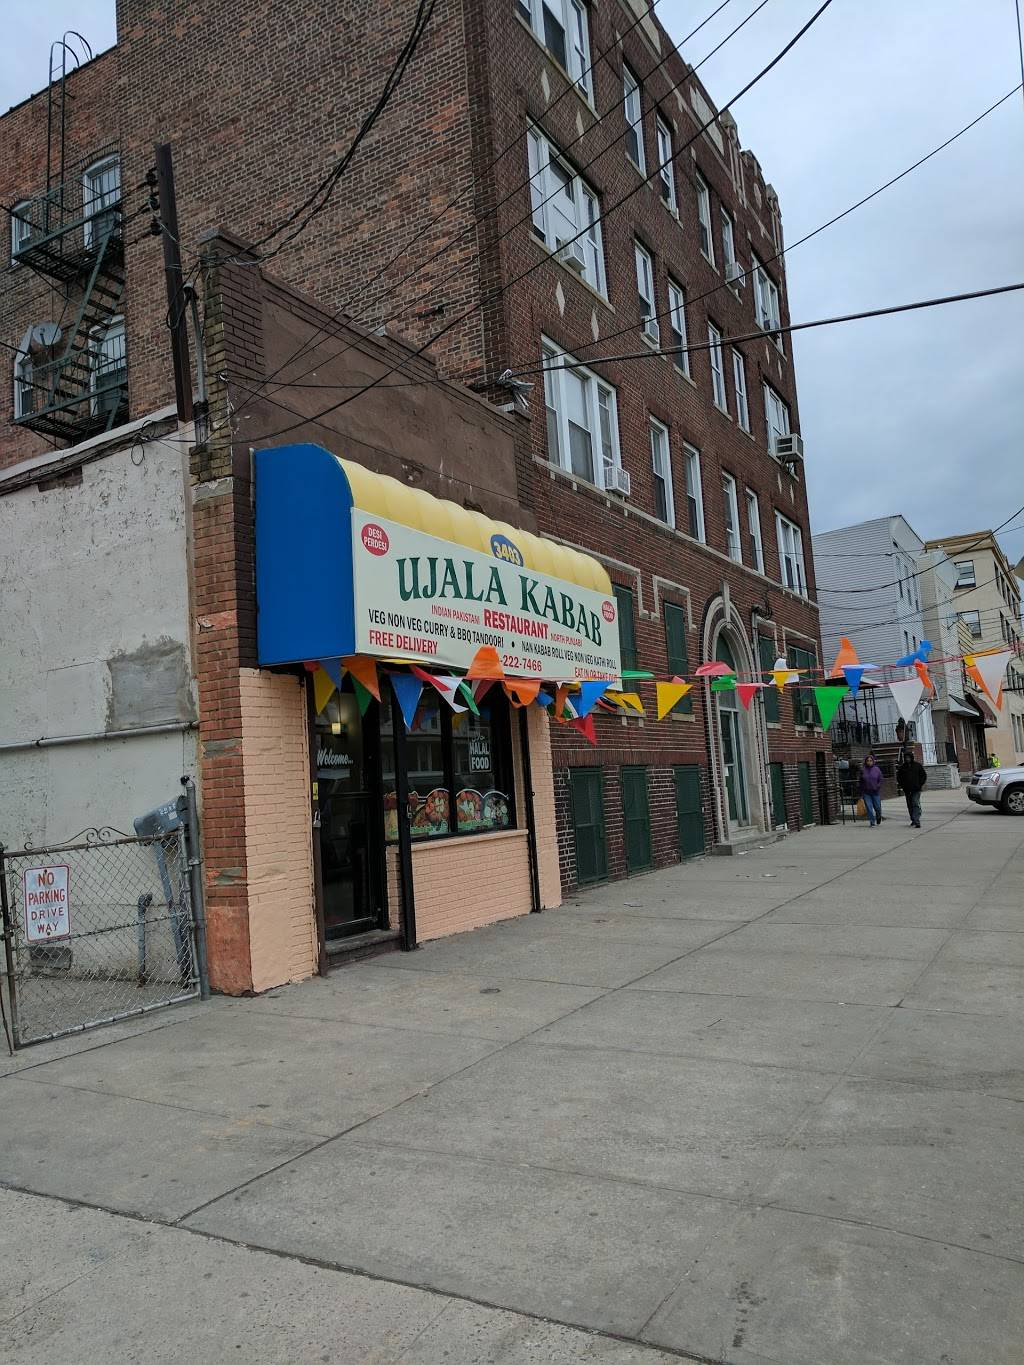 Ujala Kabab Restaurant | restaurant | 3403 John F. Kennedy Blvd, Jersey City, NJ 07307, USA | 2012227466 OR +1 201-222-7466